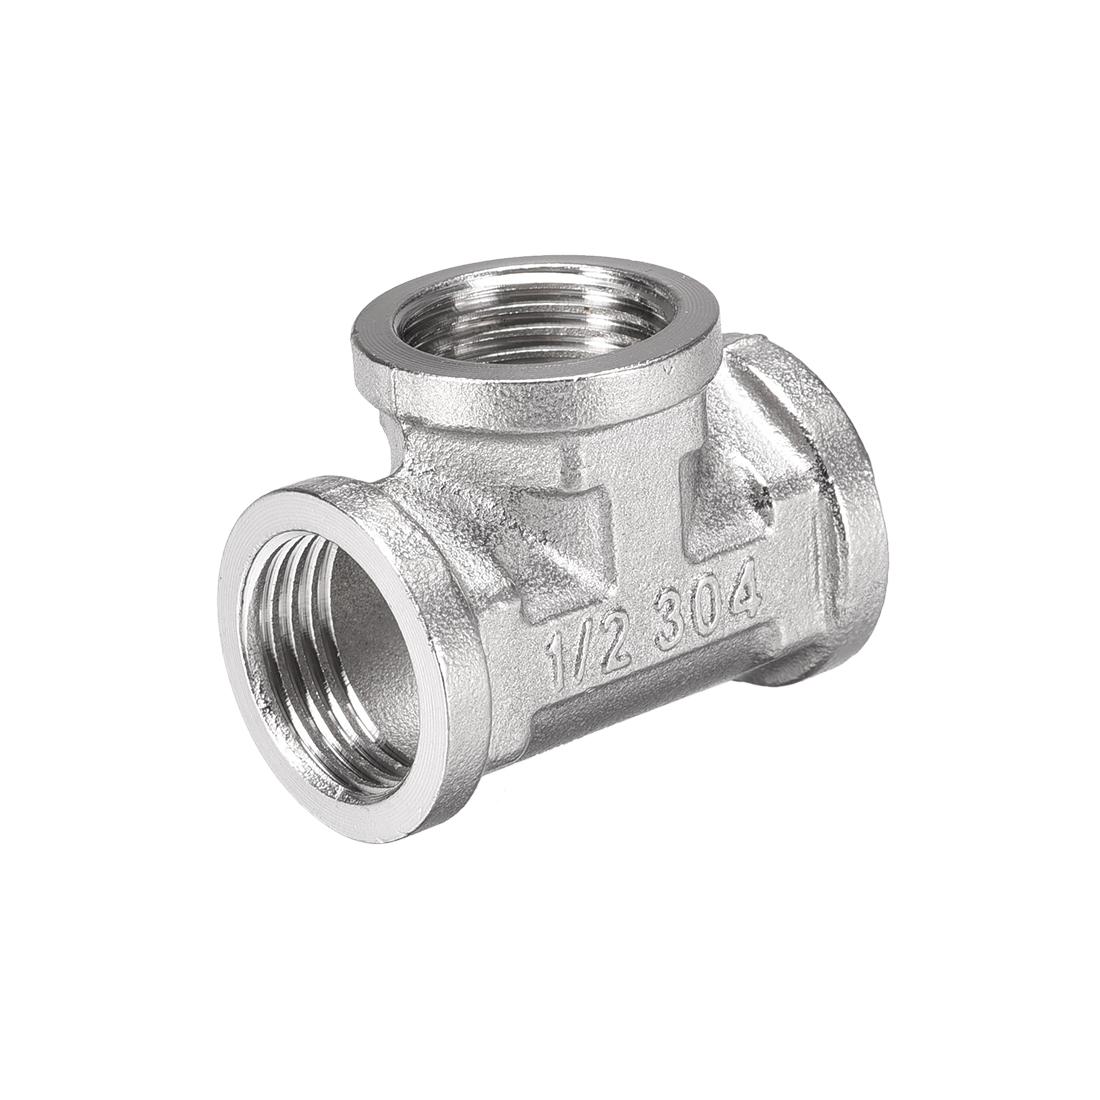 Stainless Steel 304 Cast Pipe Fitting 1/2BSPT Tee Shaped Connector Coupler